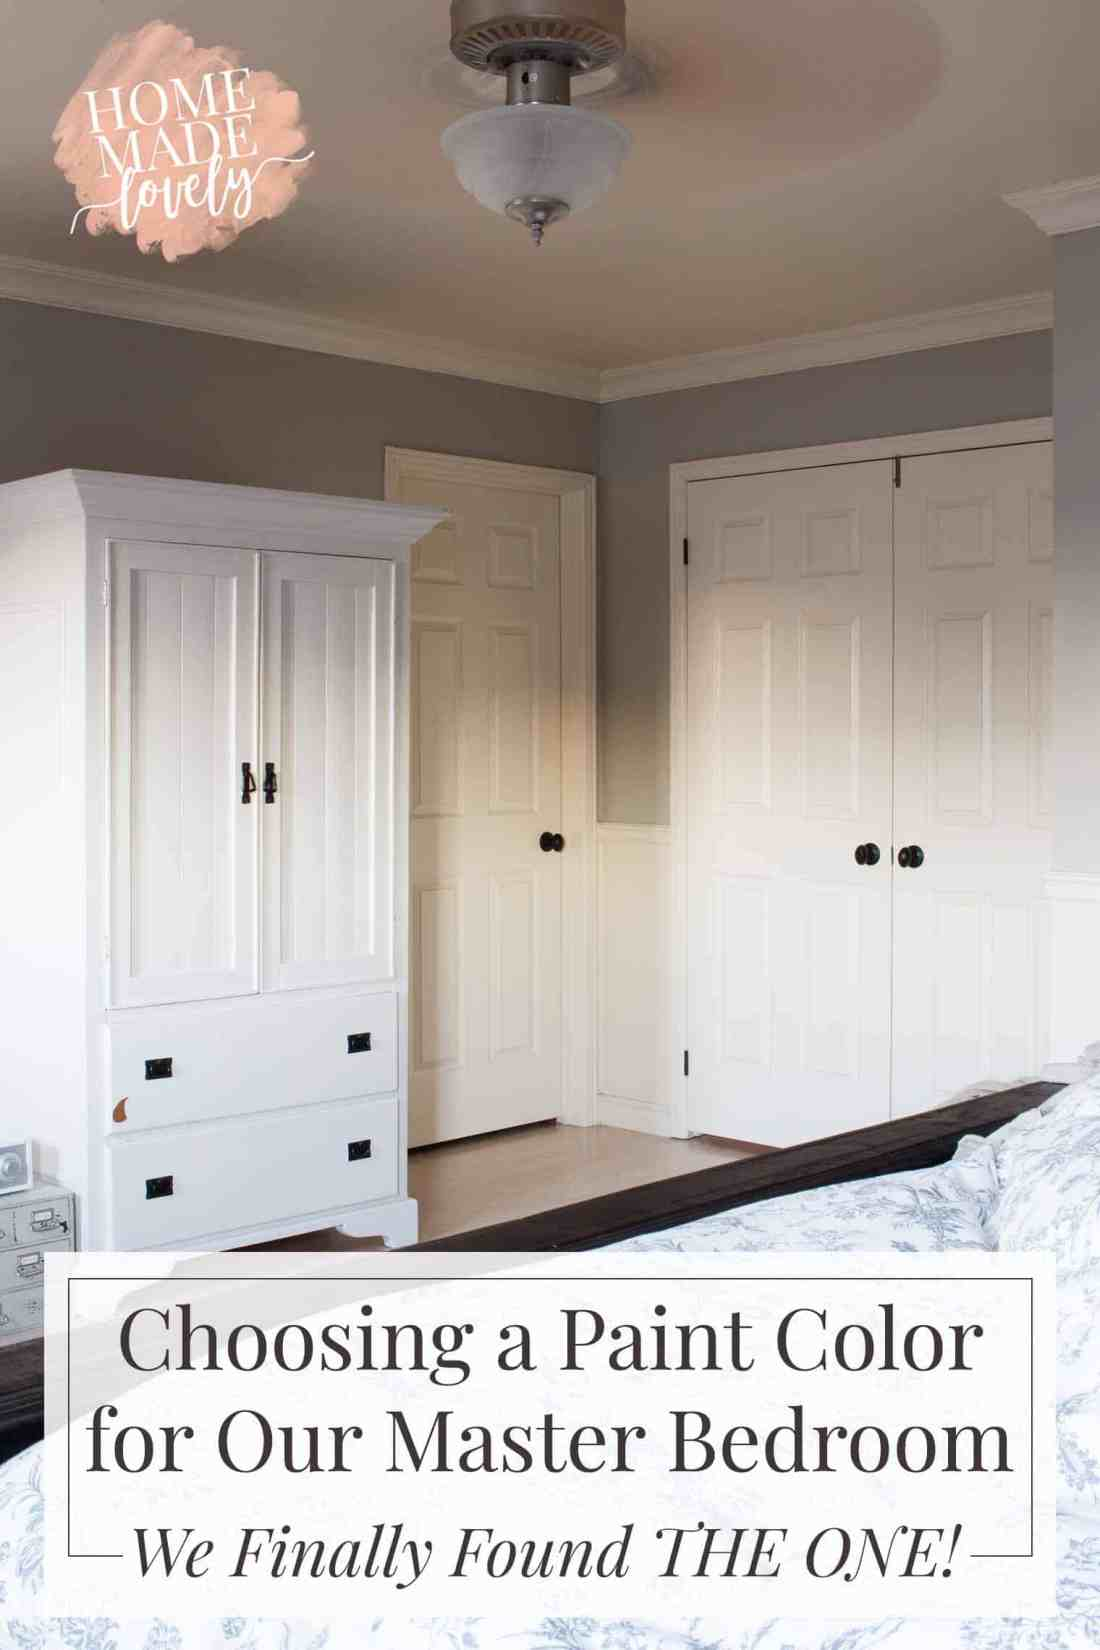 Choosing a Paint Color for Our Master Bedroom - We Finally Found THE ONE!